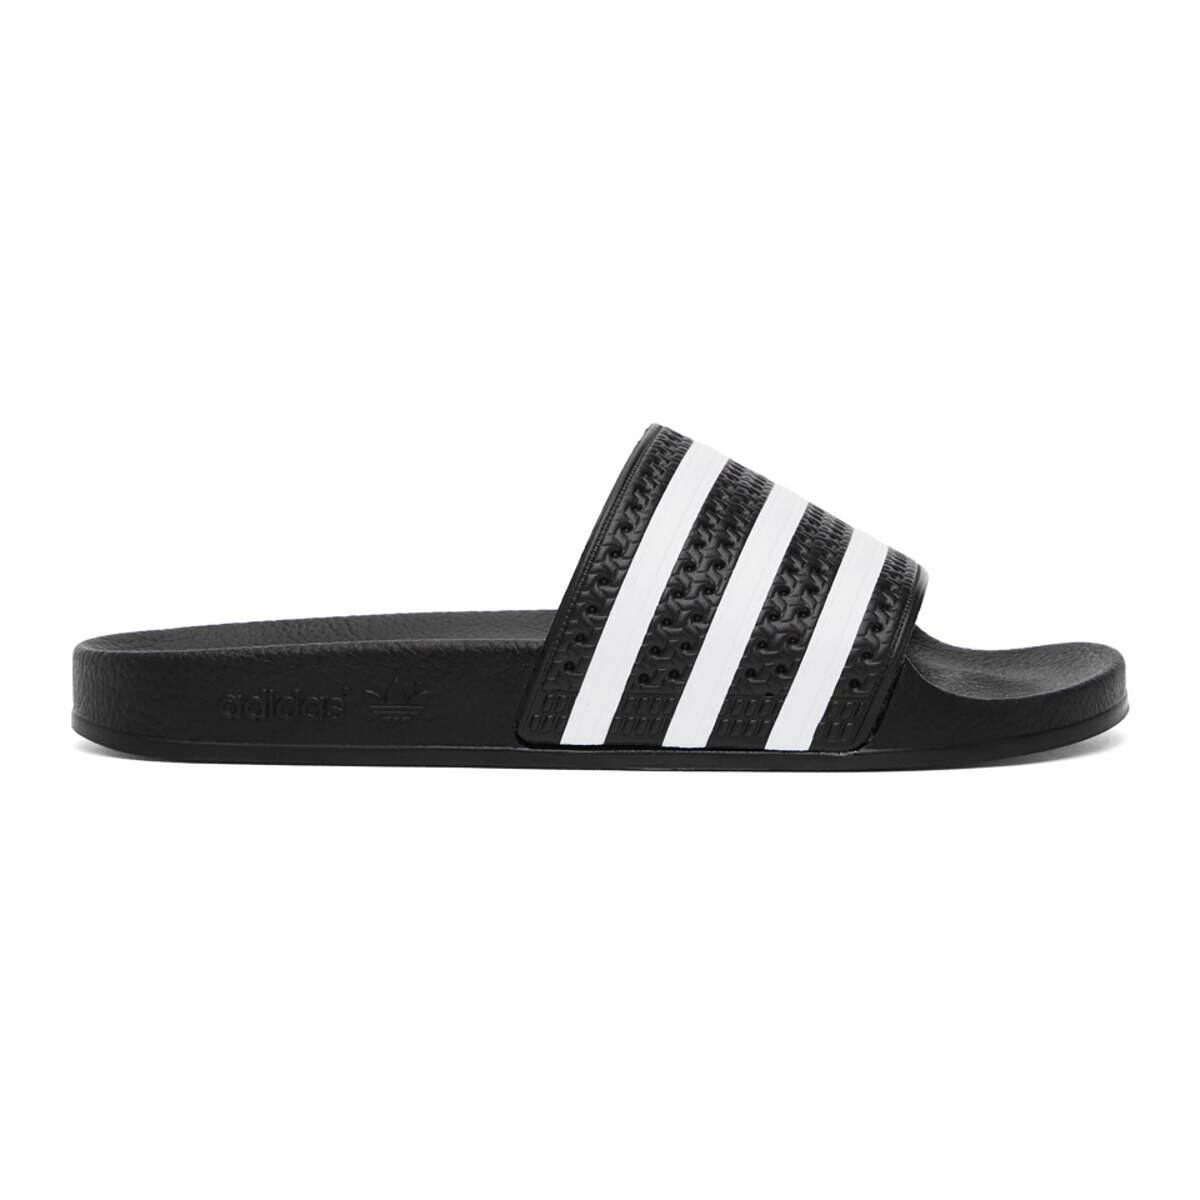 adidas Originals Black and White Adilette Slides Ssense USA MEN Men SHOES Mens SANDALS